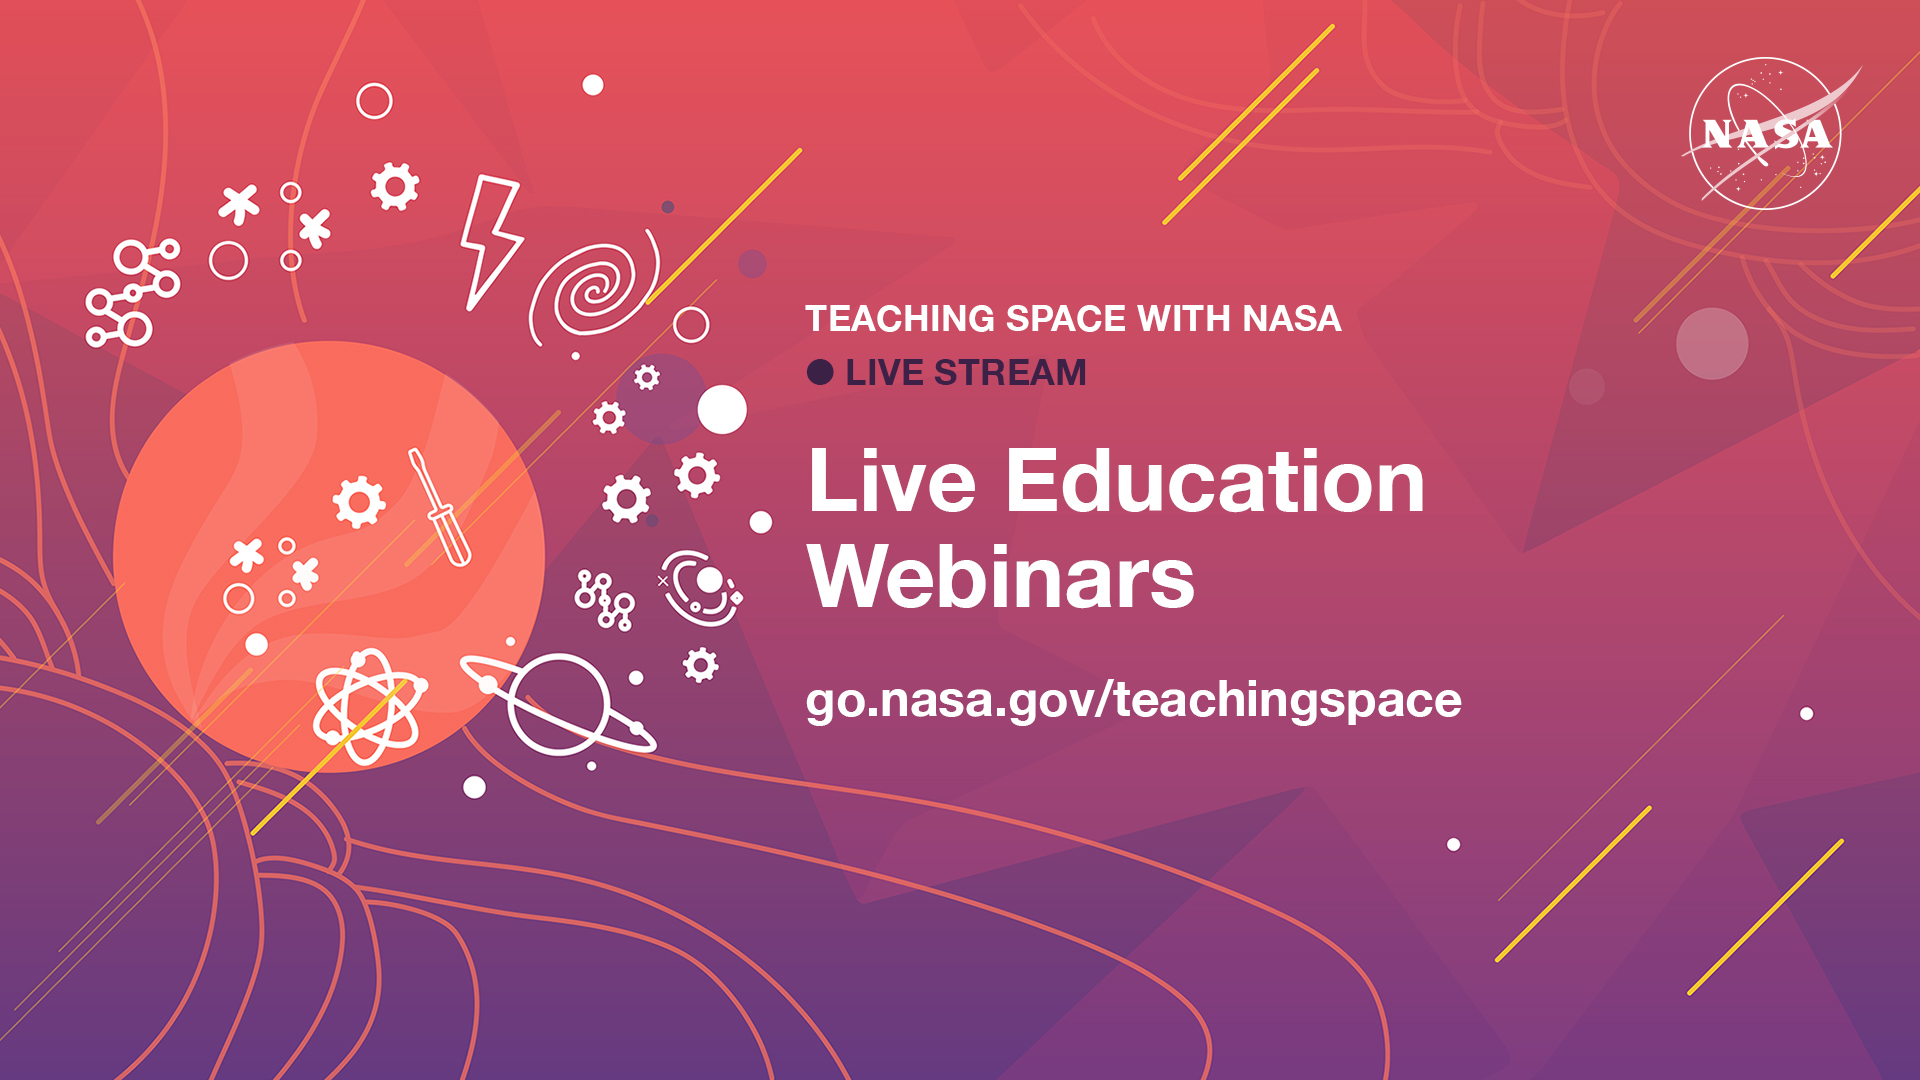 Live Streams: Teaching Space With NASA